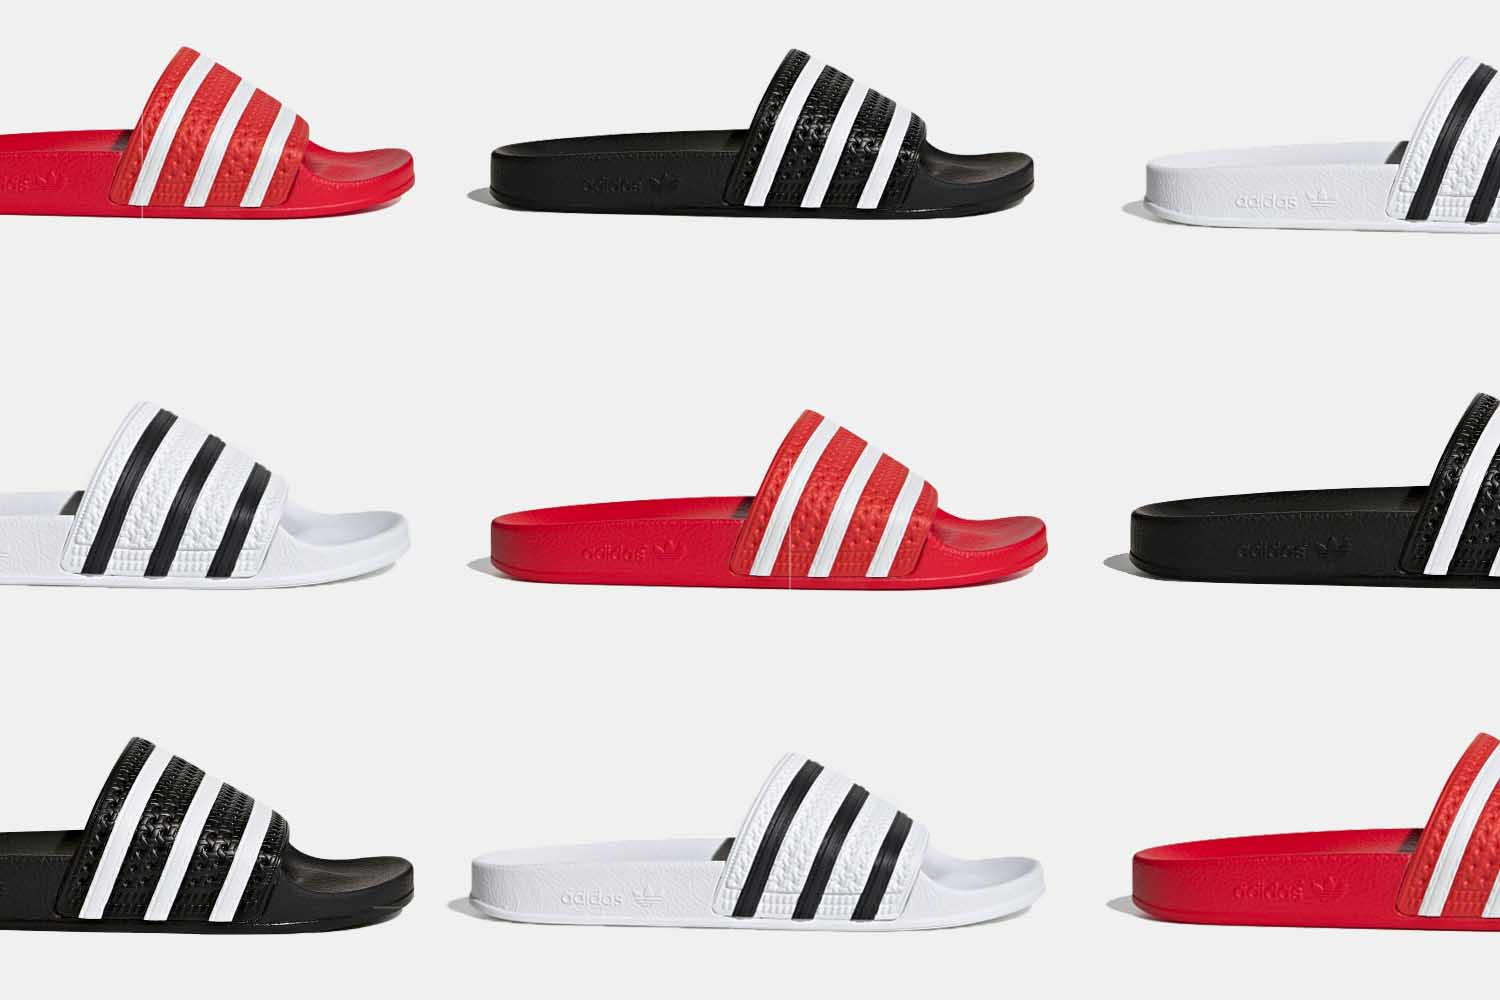 Get Some Adidas Slides for Your Home